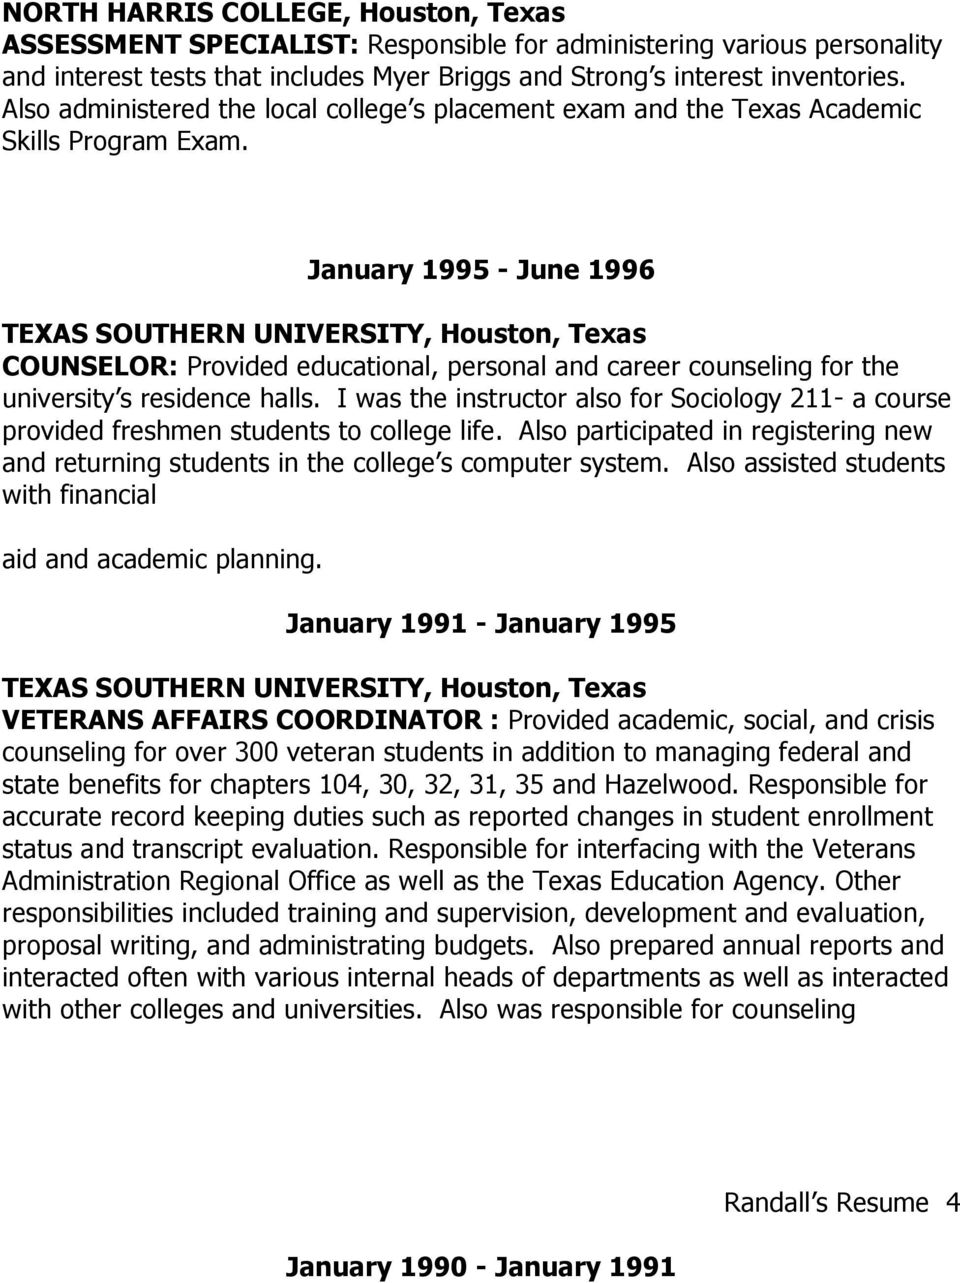 January 1995 - June 1996 TEXAS SOUTHERN UNIVERSITY, Houston, Texas COUNSELOR: Provided educational, personal and career counseling for the university s residence halls.